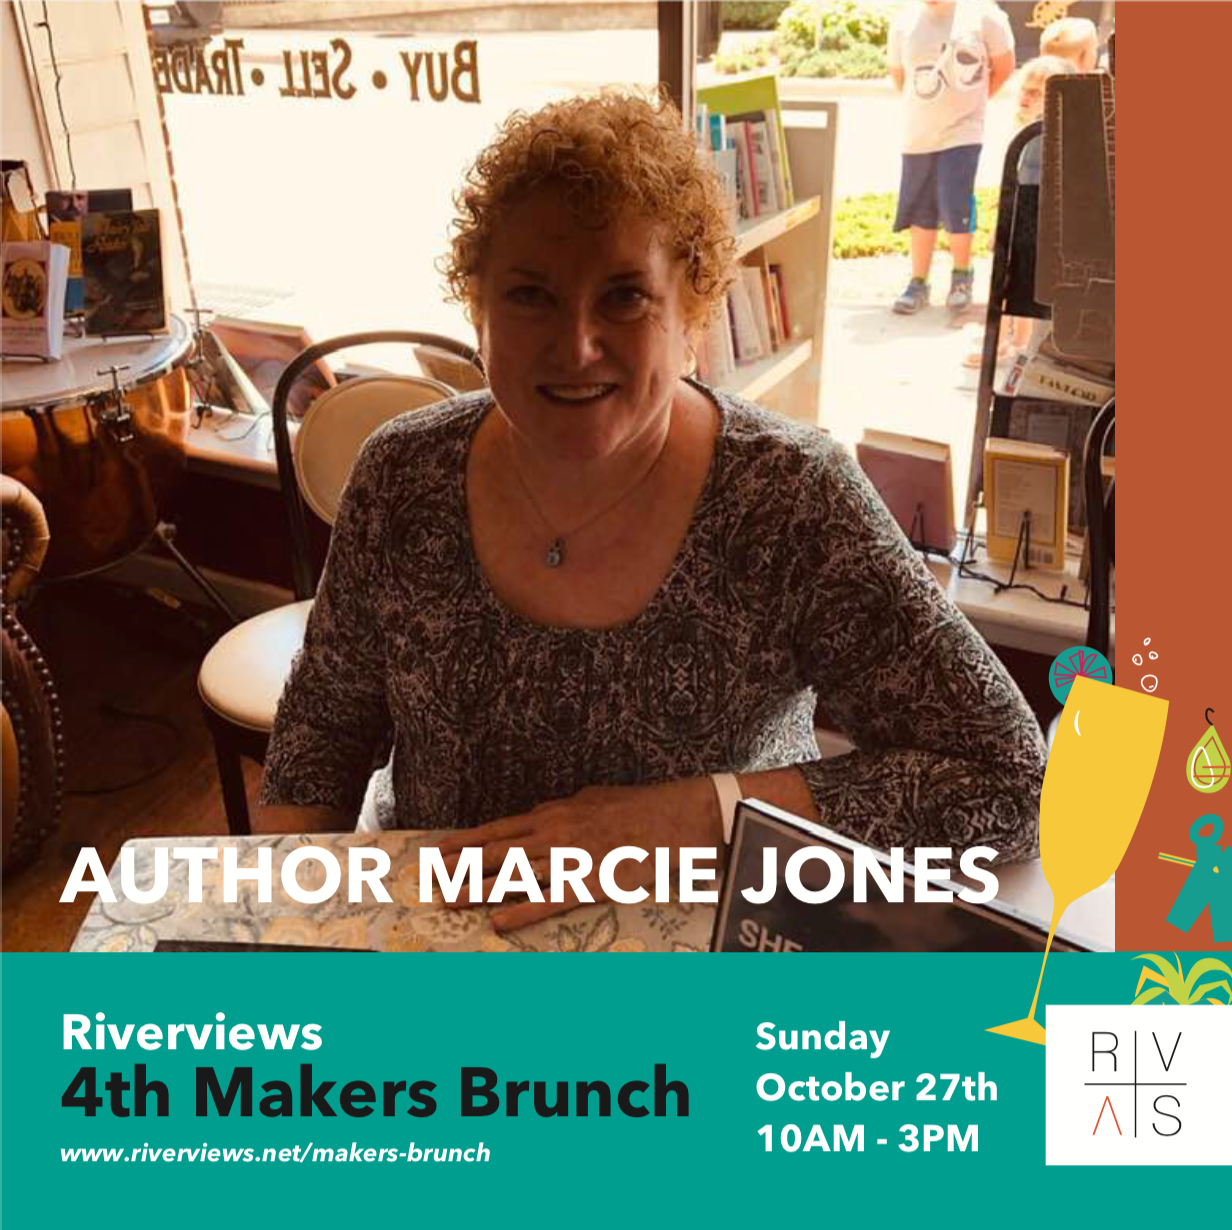 2019MakersBrunch_IG_Marcie Jones.png